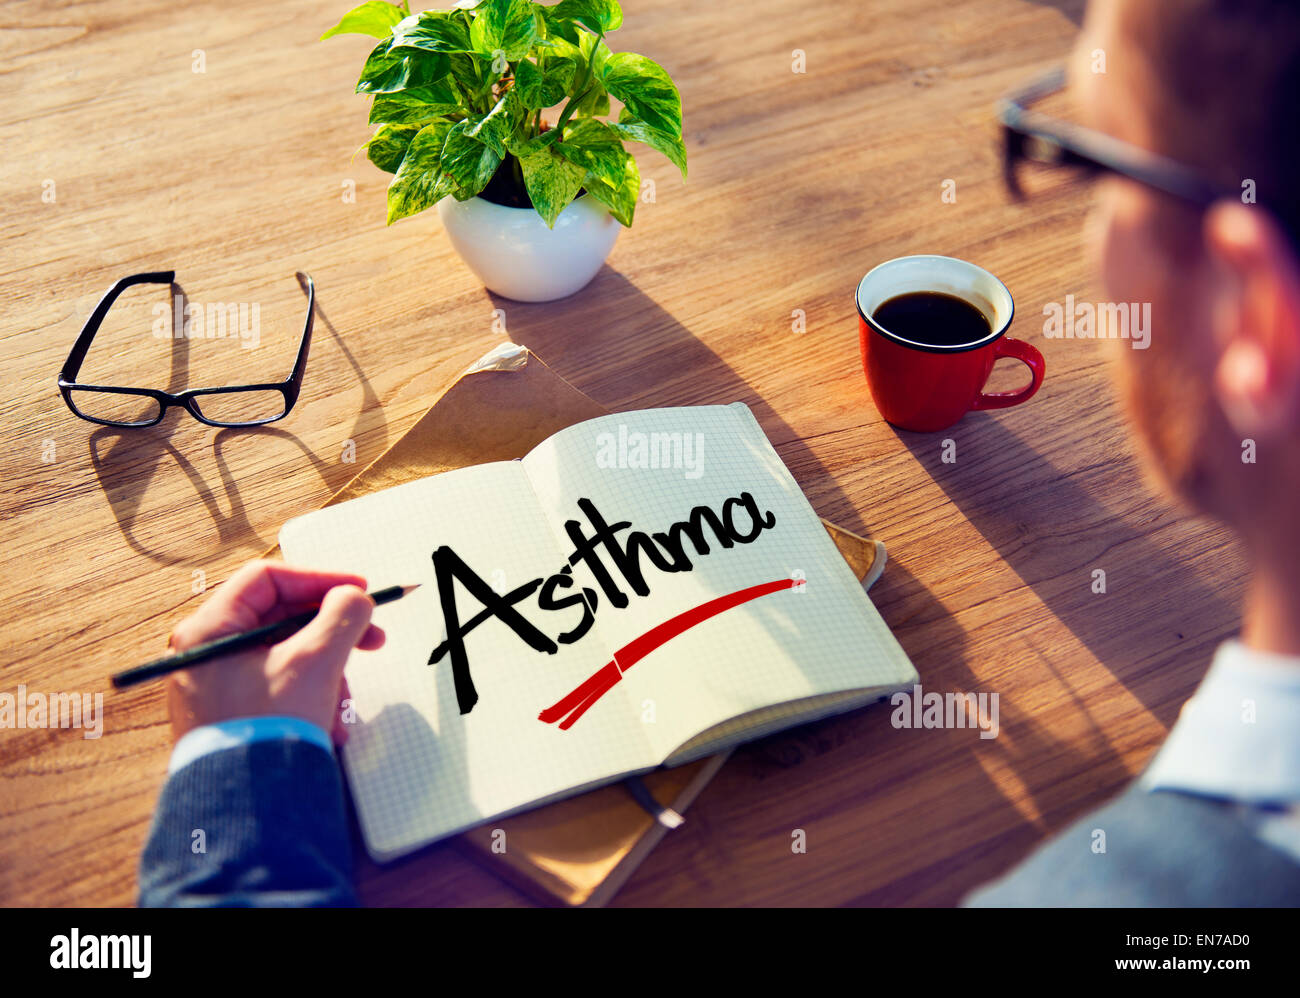 Businessman Brainstorming About Asthma - Stock Image